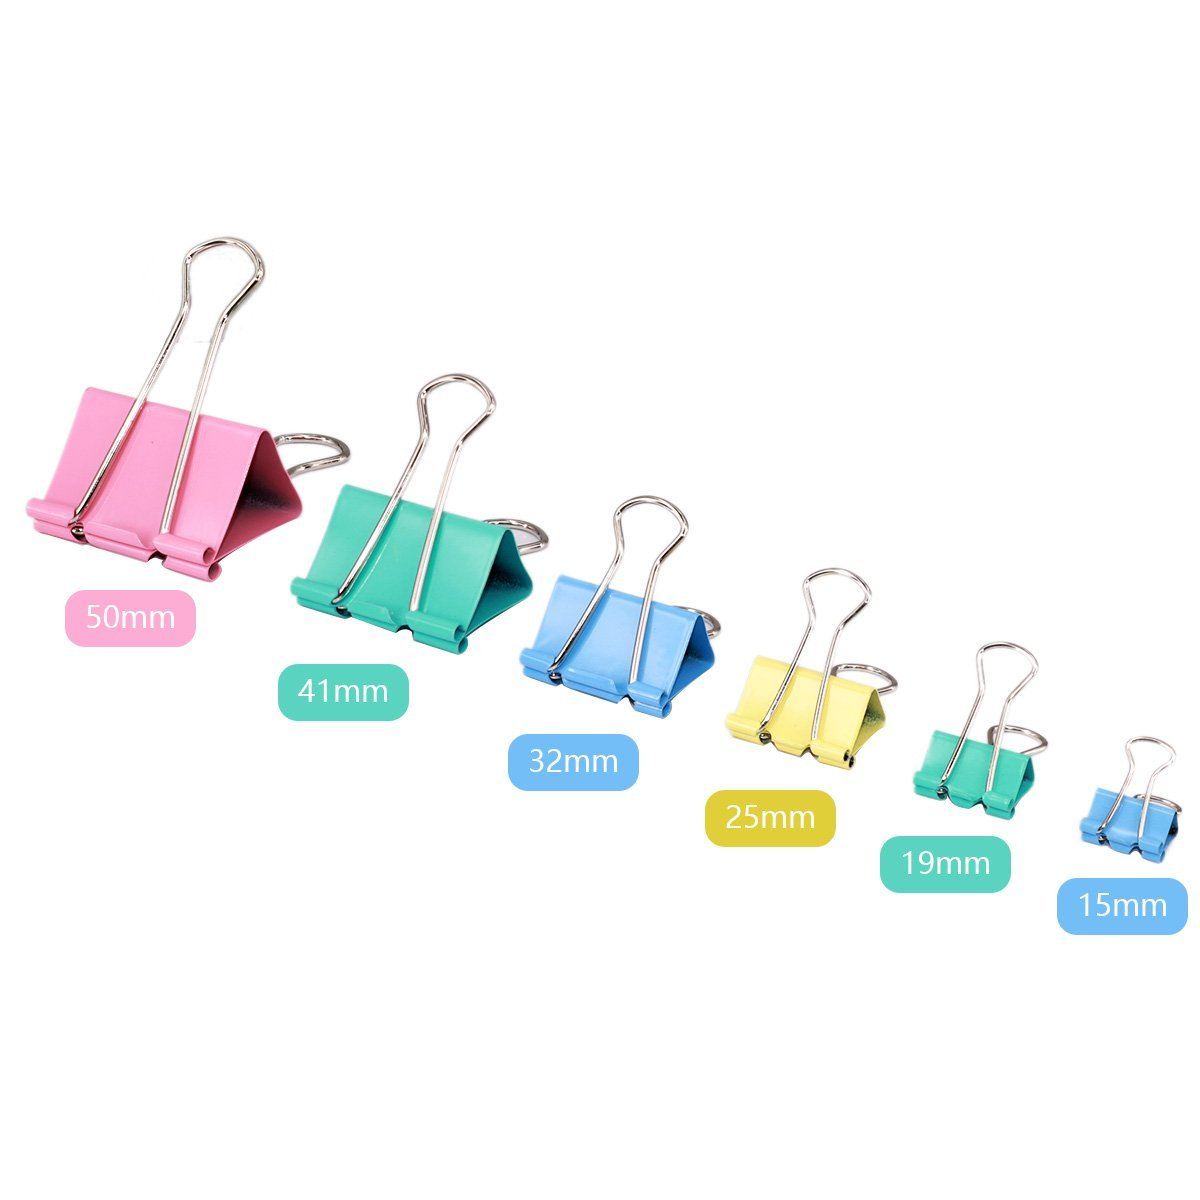 "SunAngel Organize Metal Paper Binder Clips, Assorted Colors and 6 Different Size, Size Including: 1/2""(15mm), 3/4""(19mm), 1""(25mm), 1-1/4""( 32mm), 1-3/4""(41mm), 2""(50mm), 100-Count"